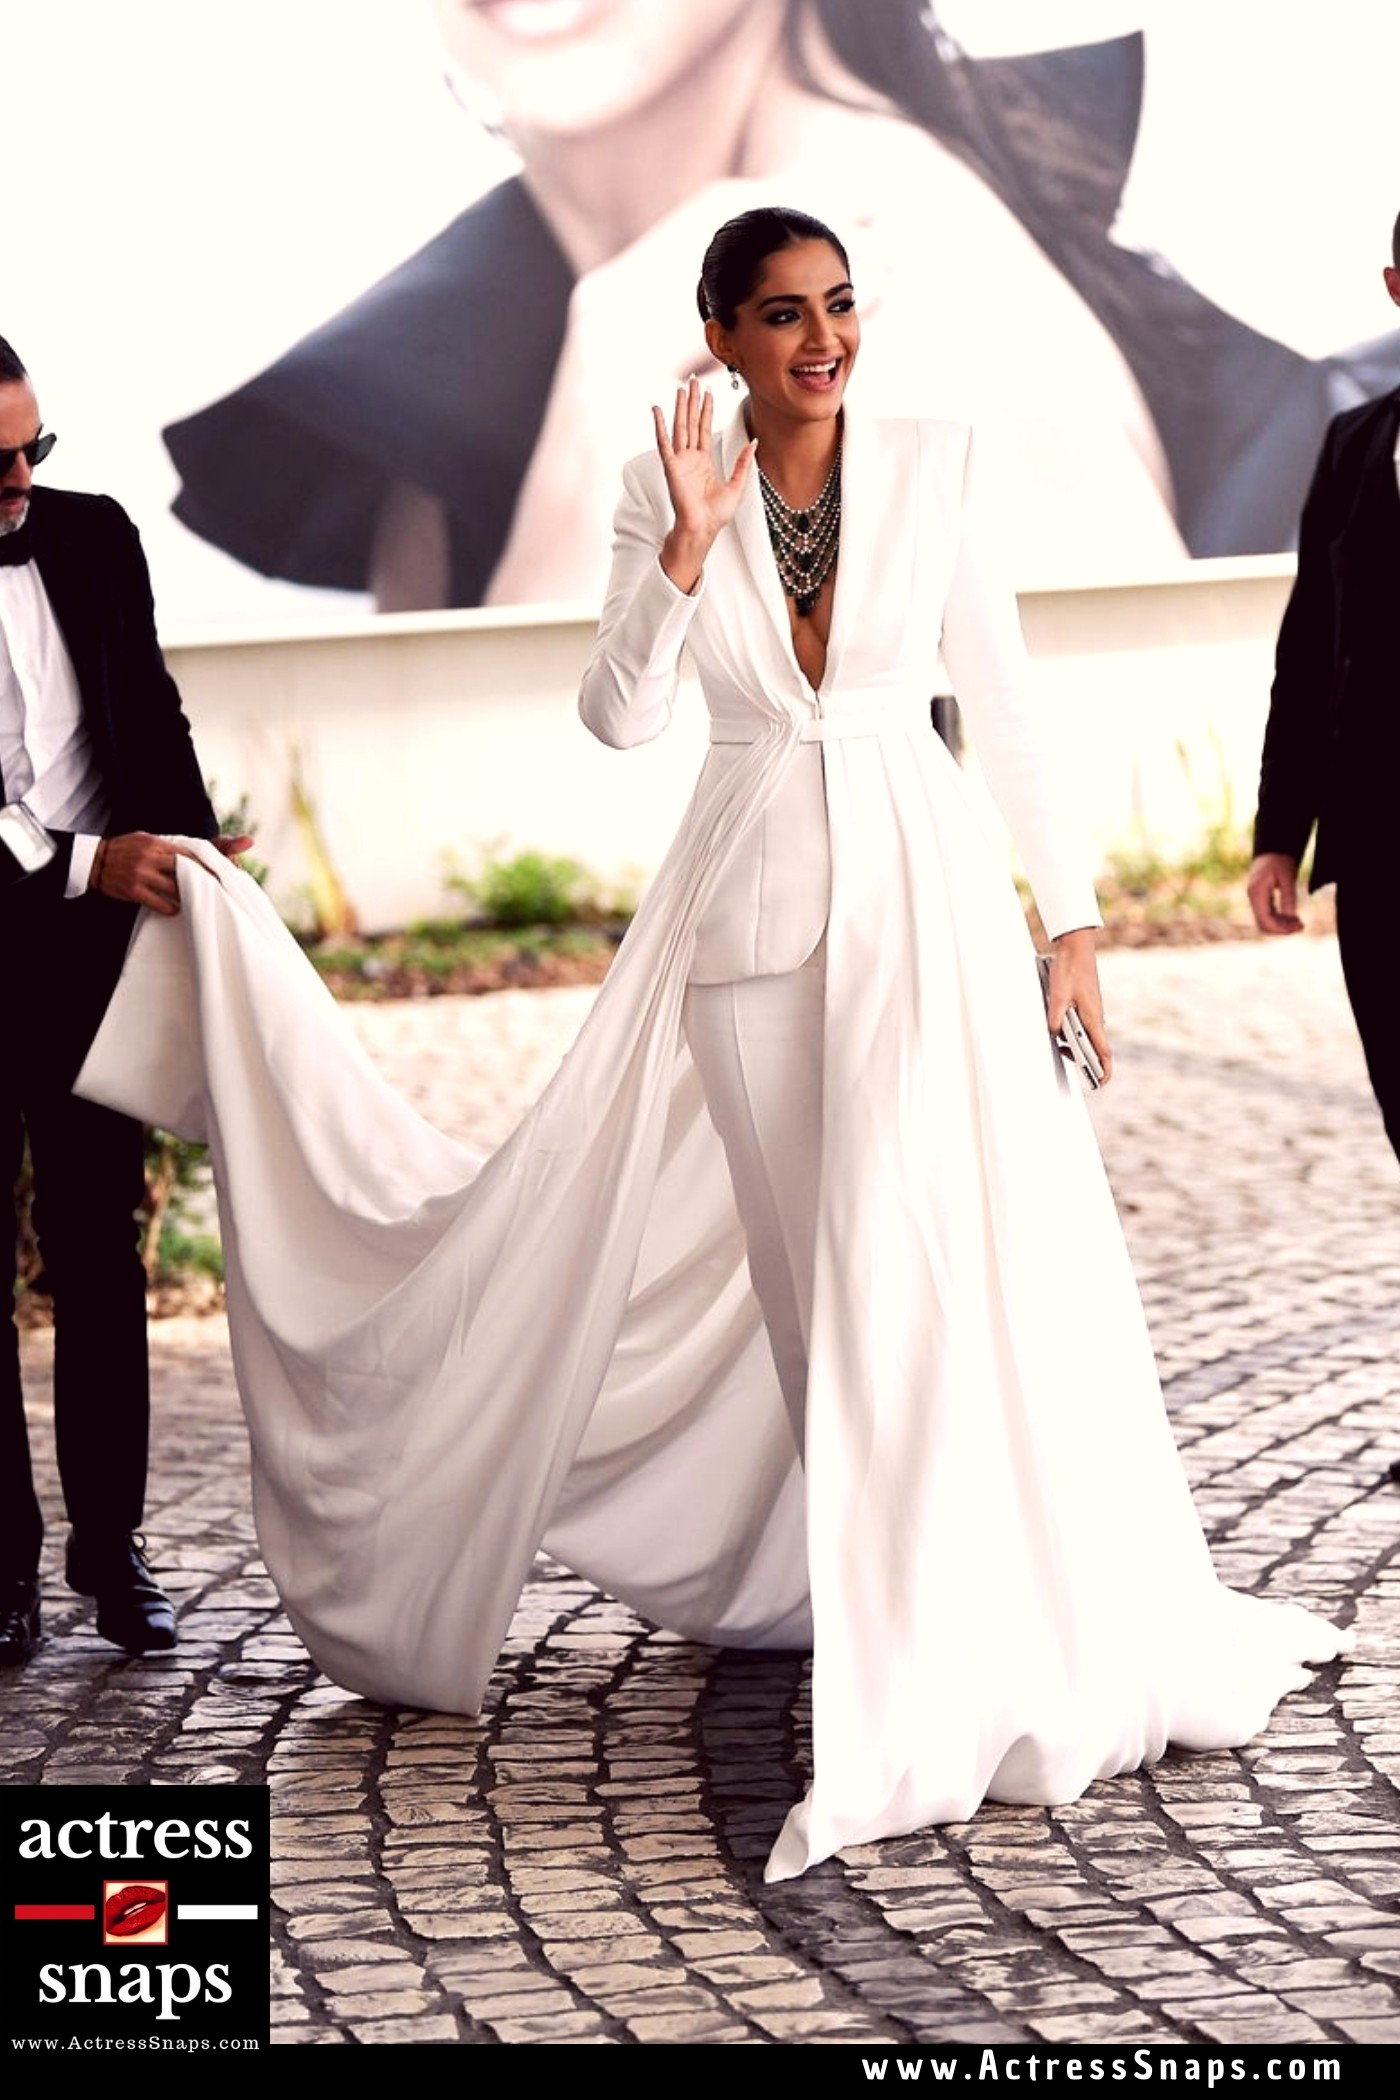 Sonam Kapoor at Cannes 2019 Film Festival - Sexy Actress Pictures   Hot Actress Pictures - ActressSnaps.com